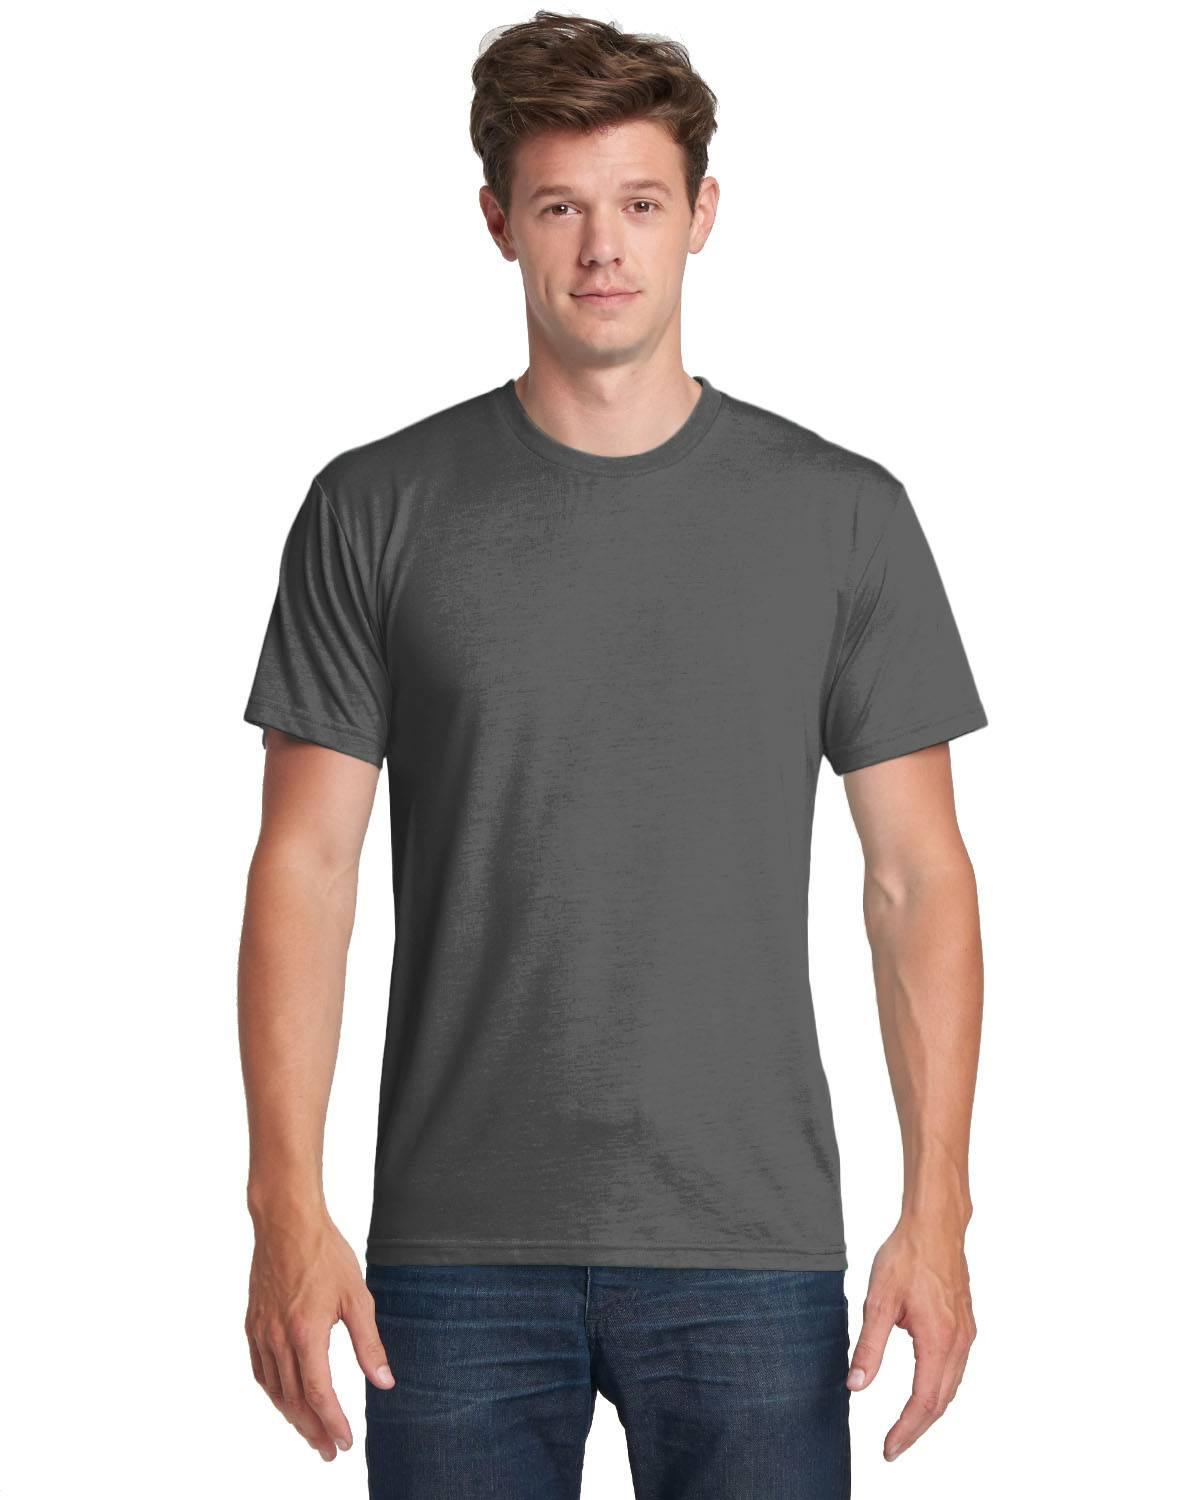 Next Level Men's Triblend Crew | 6010